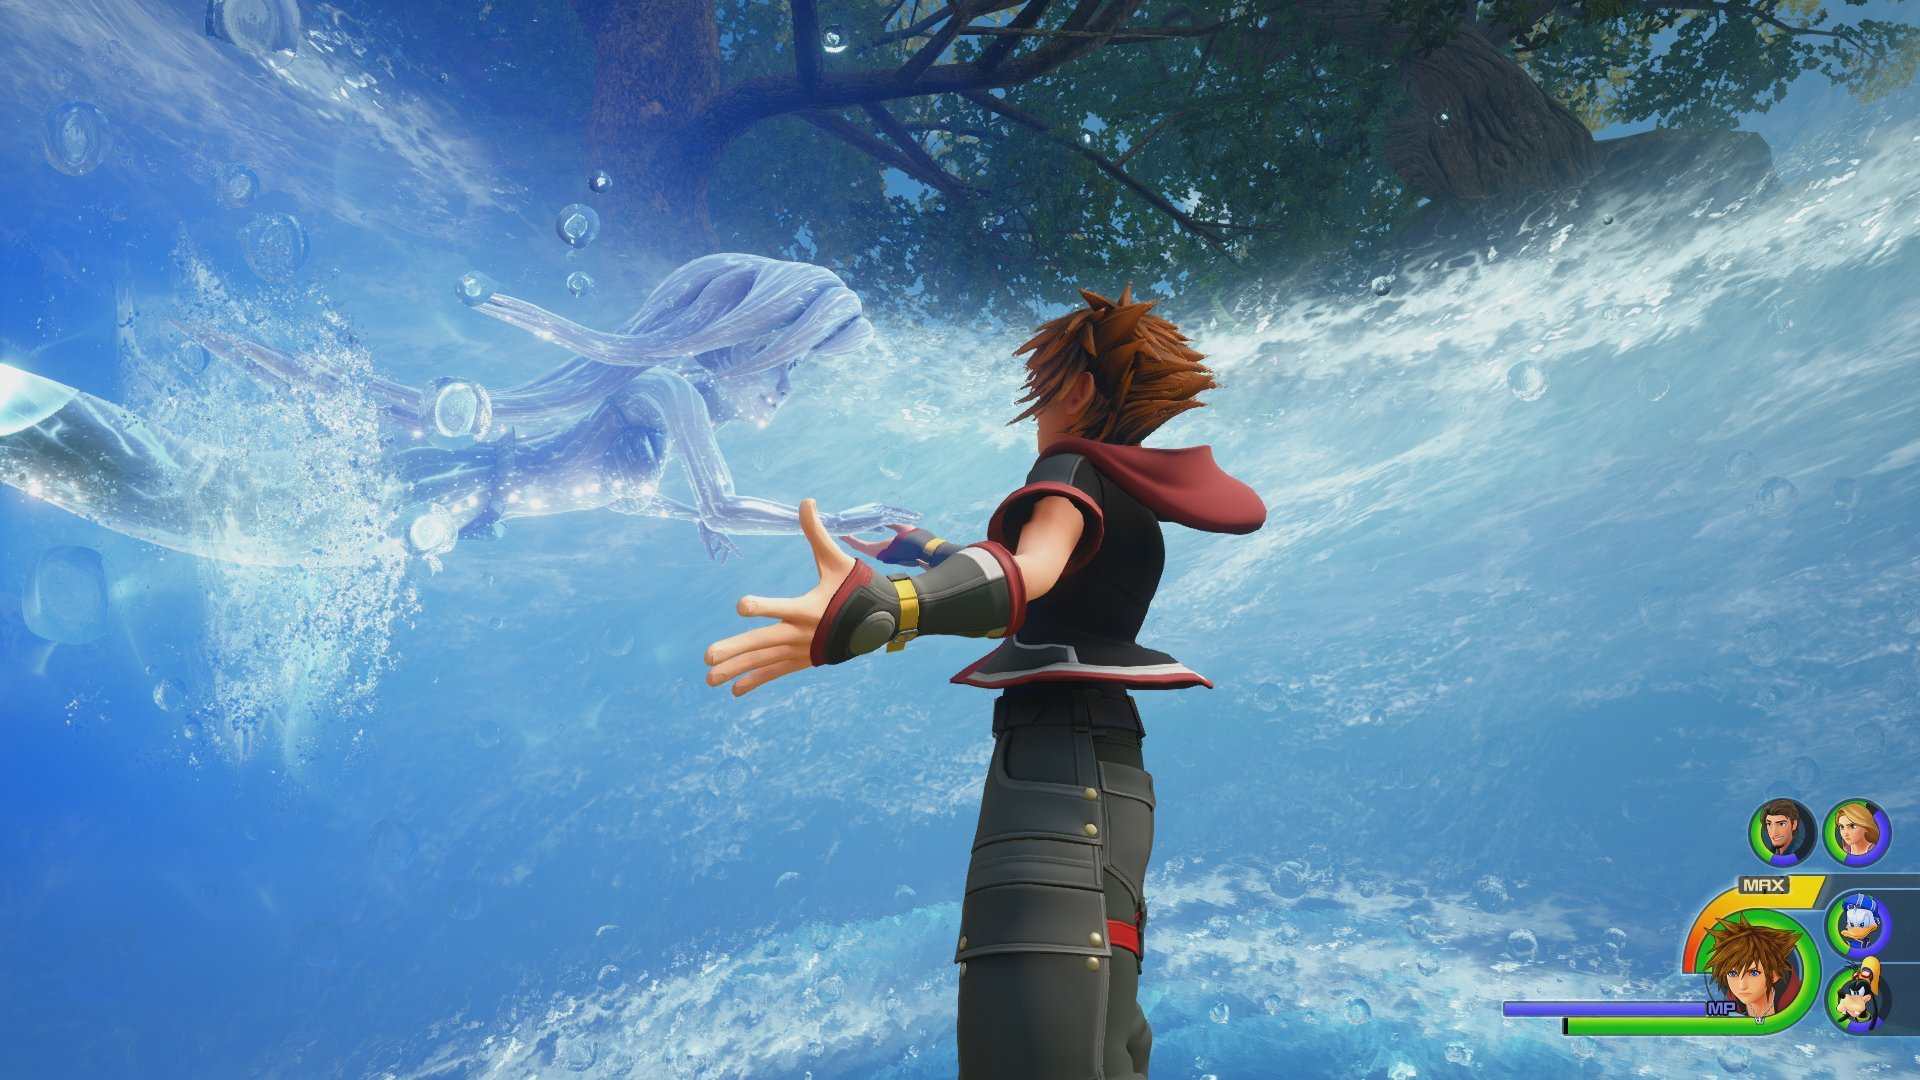 Kingdom Hearts 3 (PS4) by Square Enix (Image #4)